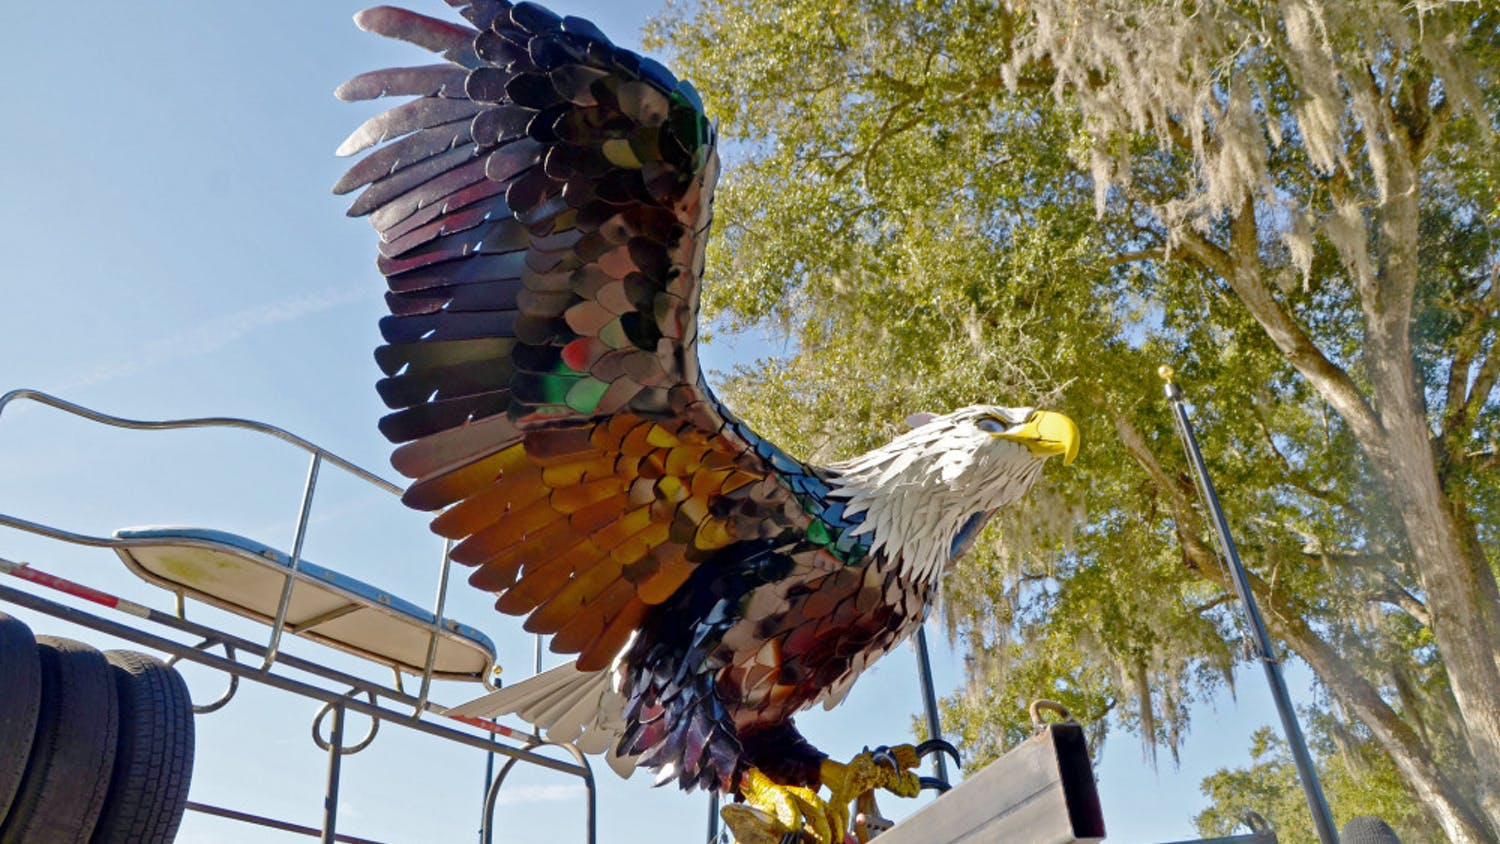 An eagle sculpture displayed at the park is made of recycled shipping containers and beer kegs.